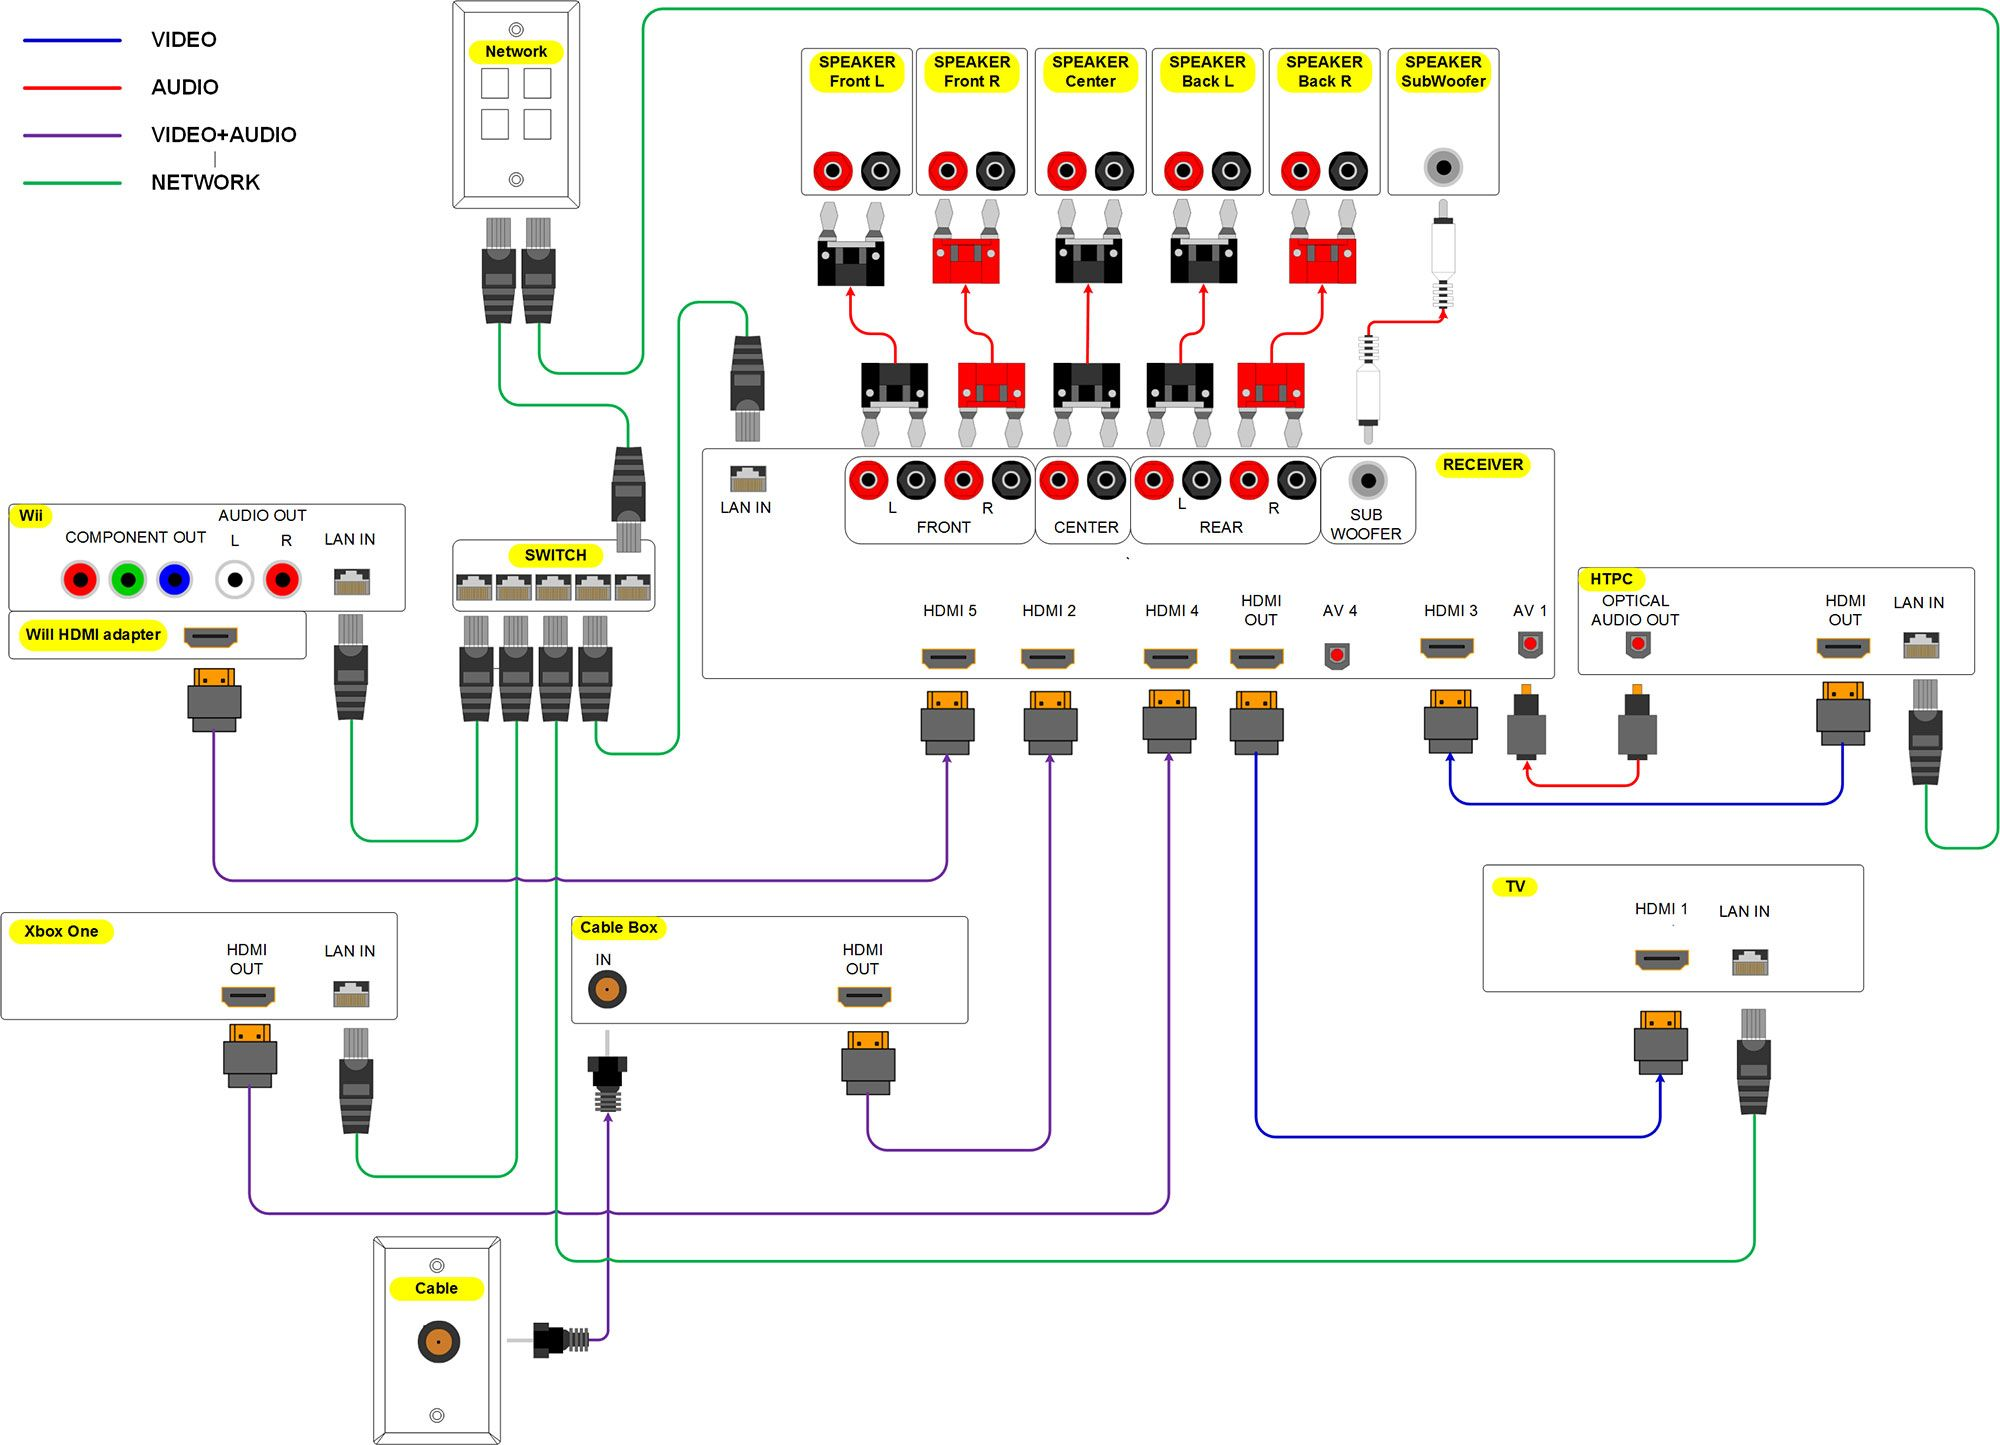 home audio wiring diagram 7 spikeballclubkoeln de \u2022home theater wiring diagram click it to see the big 2000 pixel wide rh pinterest com